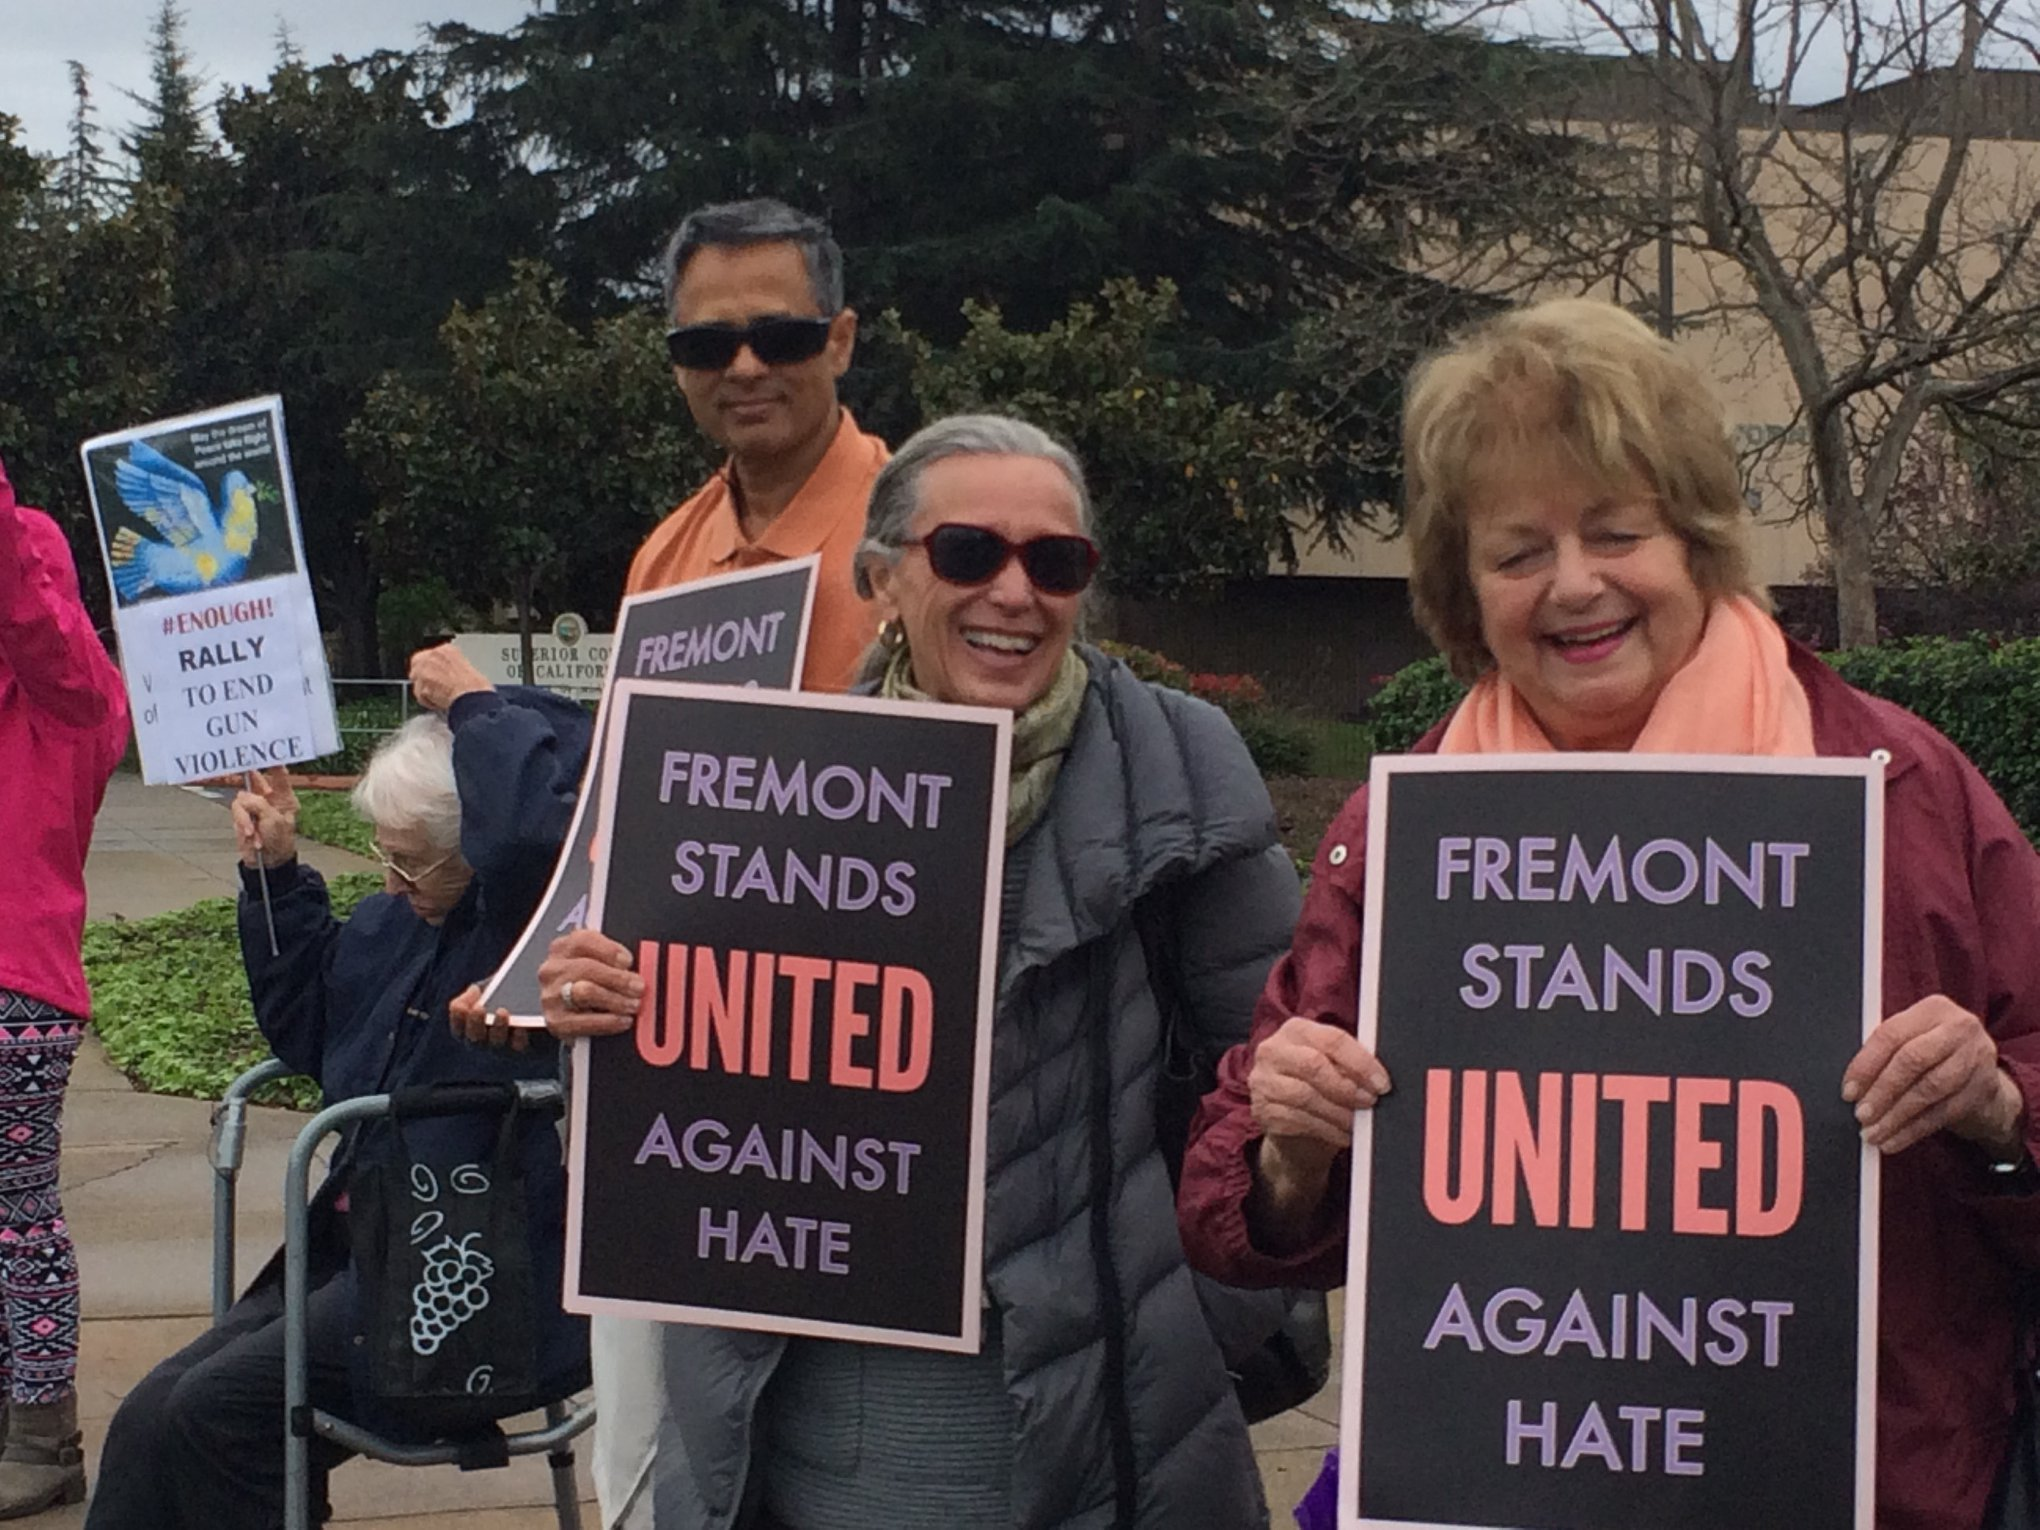 Residents of Fremont stand united against hate